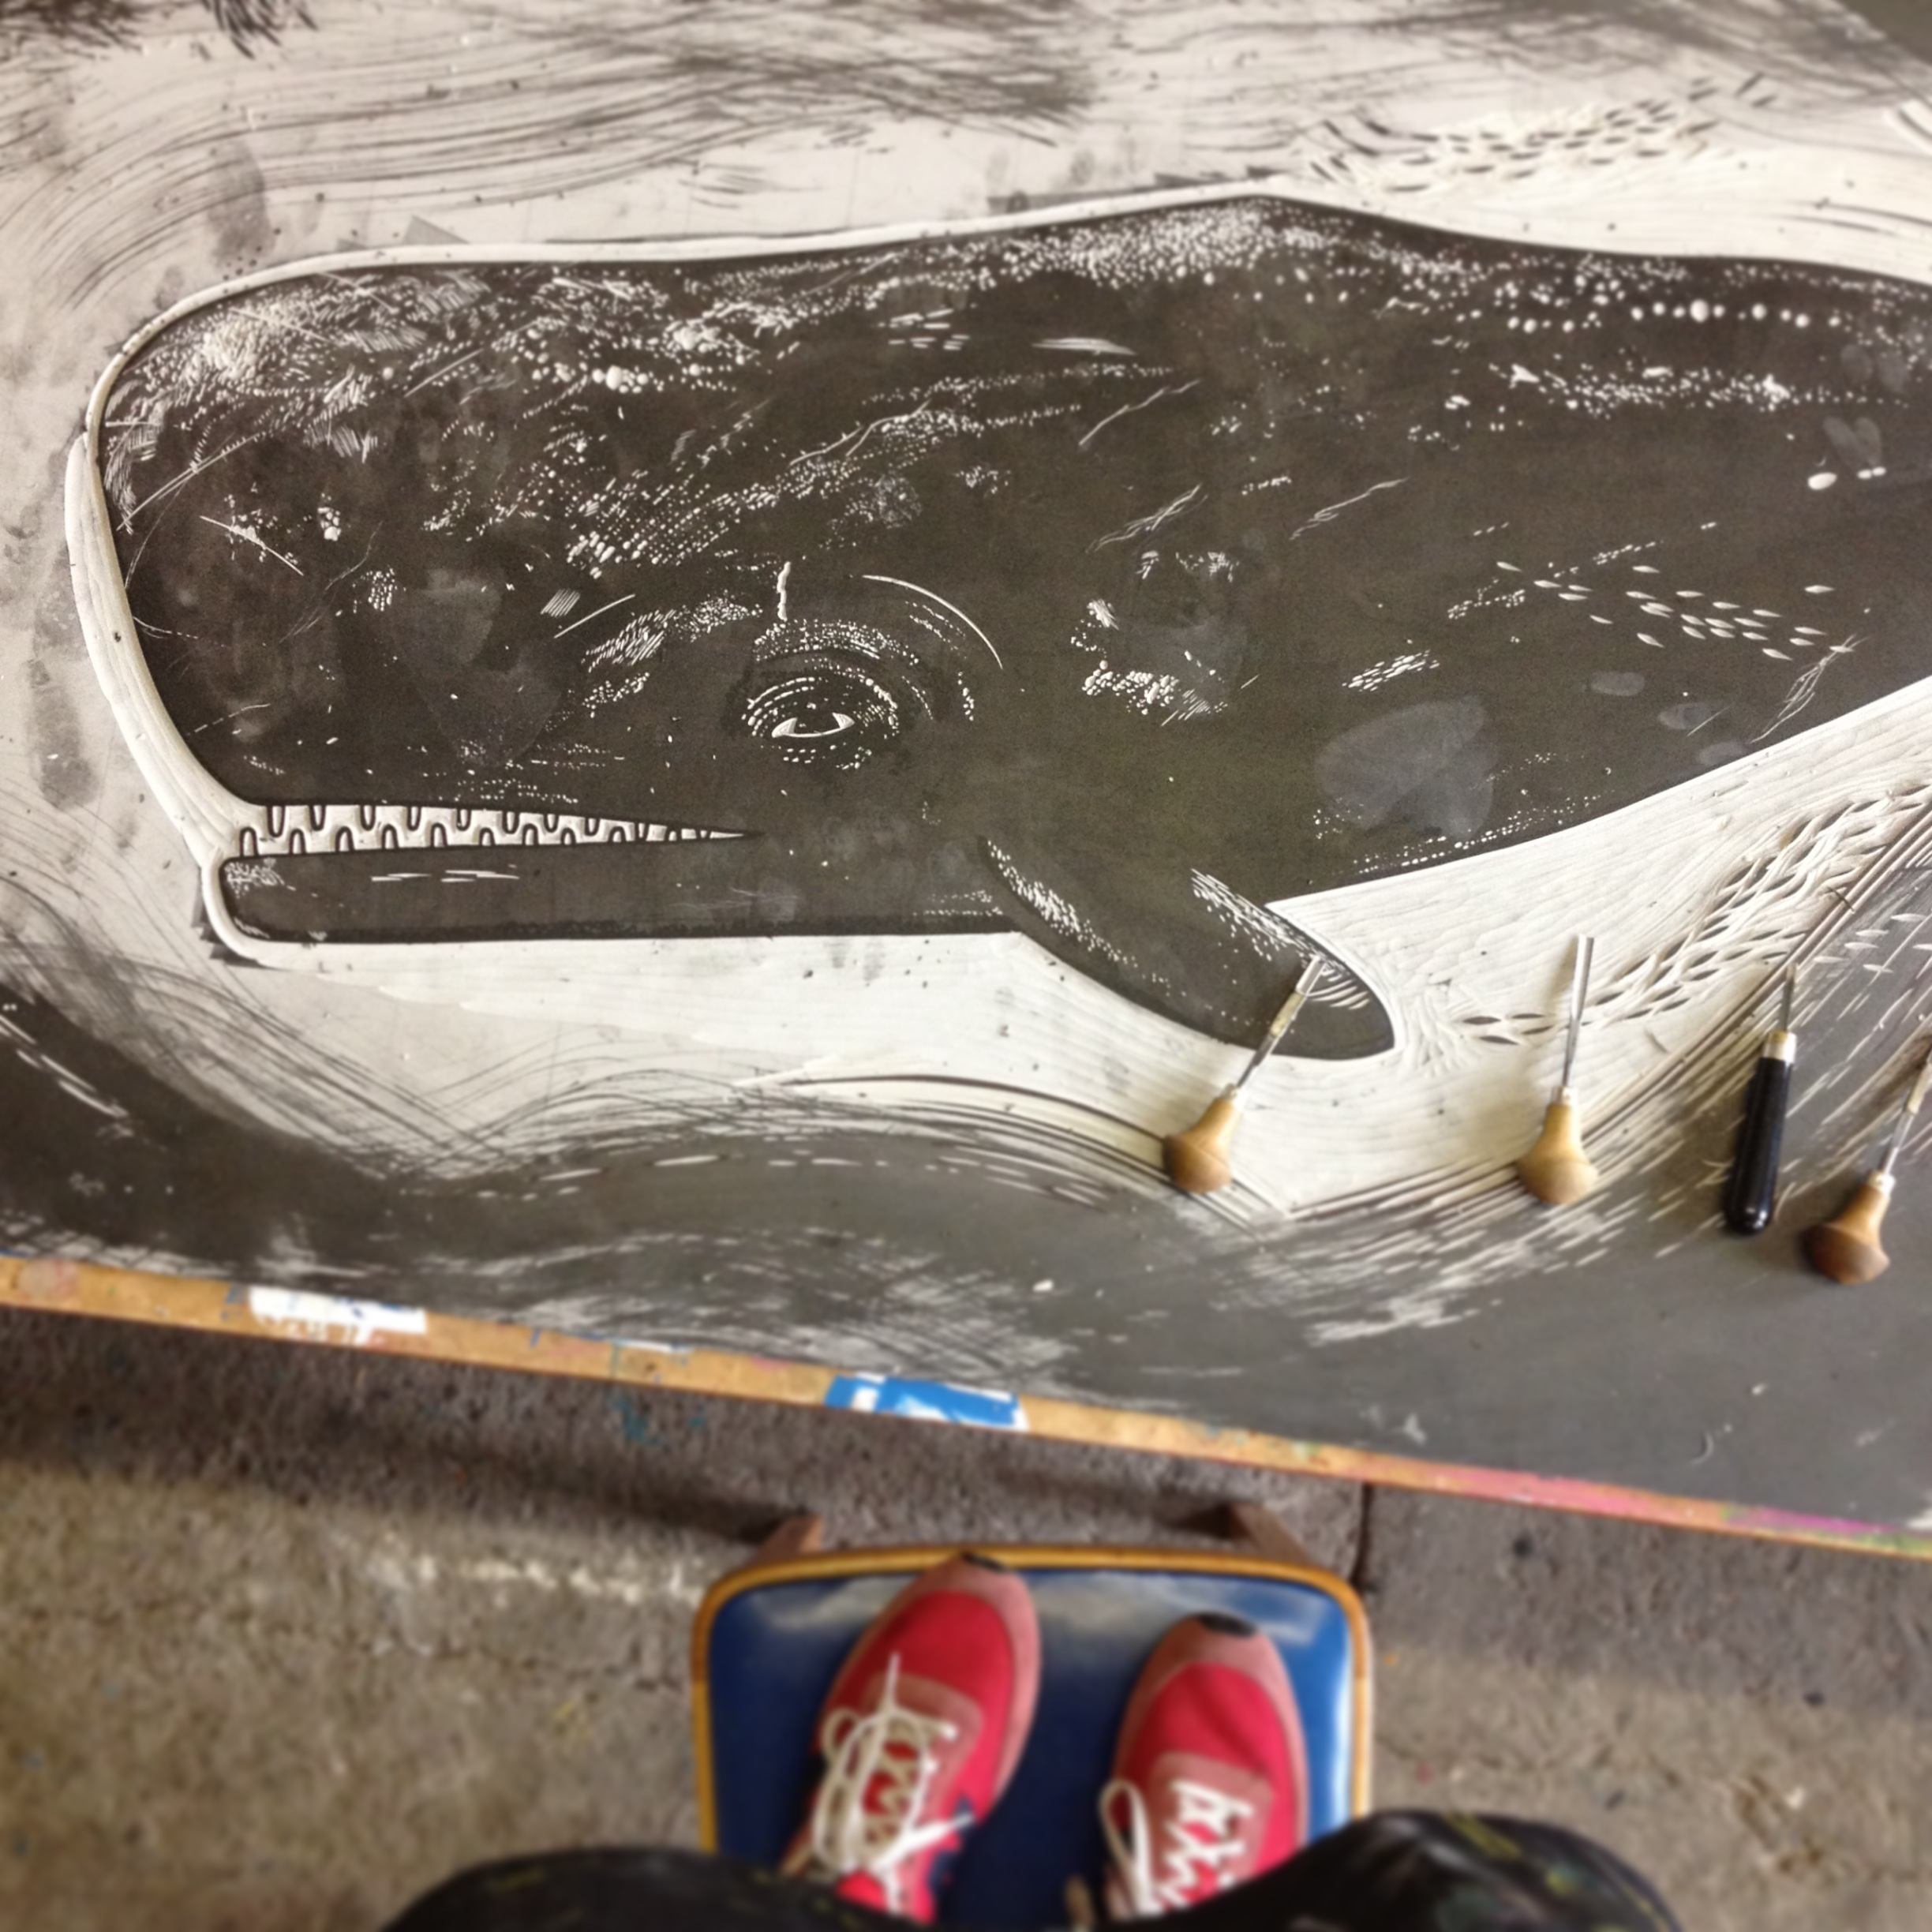 Whale linocut for Big Steam Print event